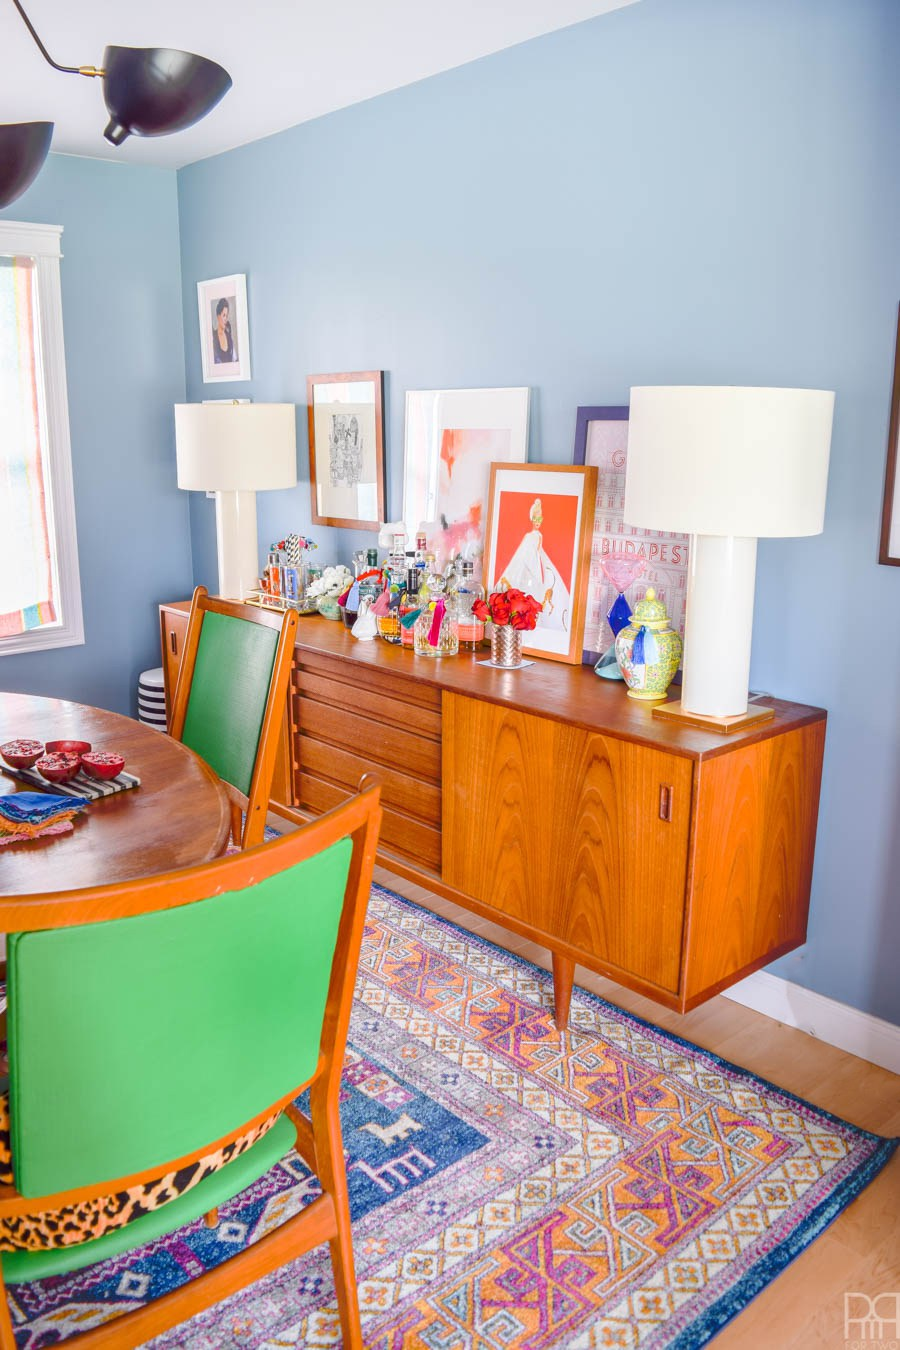 Eclectic Home Tour of PMQ for Two - get tons of renter friendly decorating and DIY ideas like this colorful, boho, mid century dining room